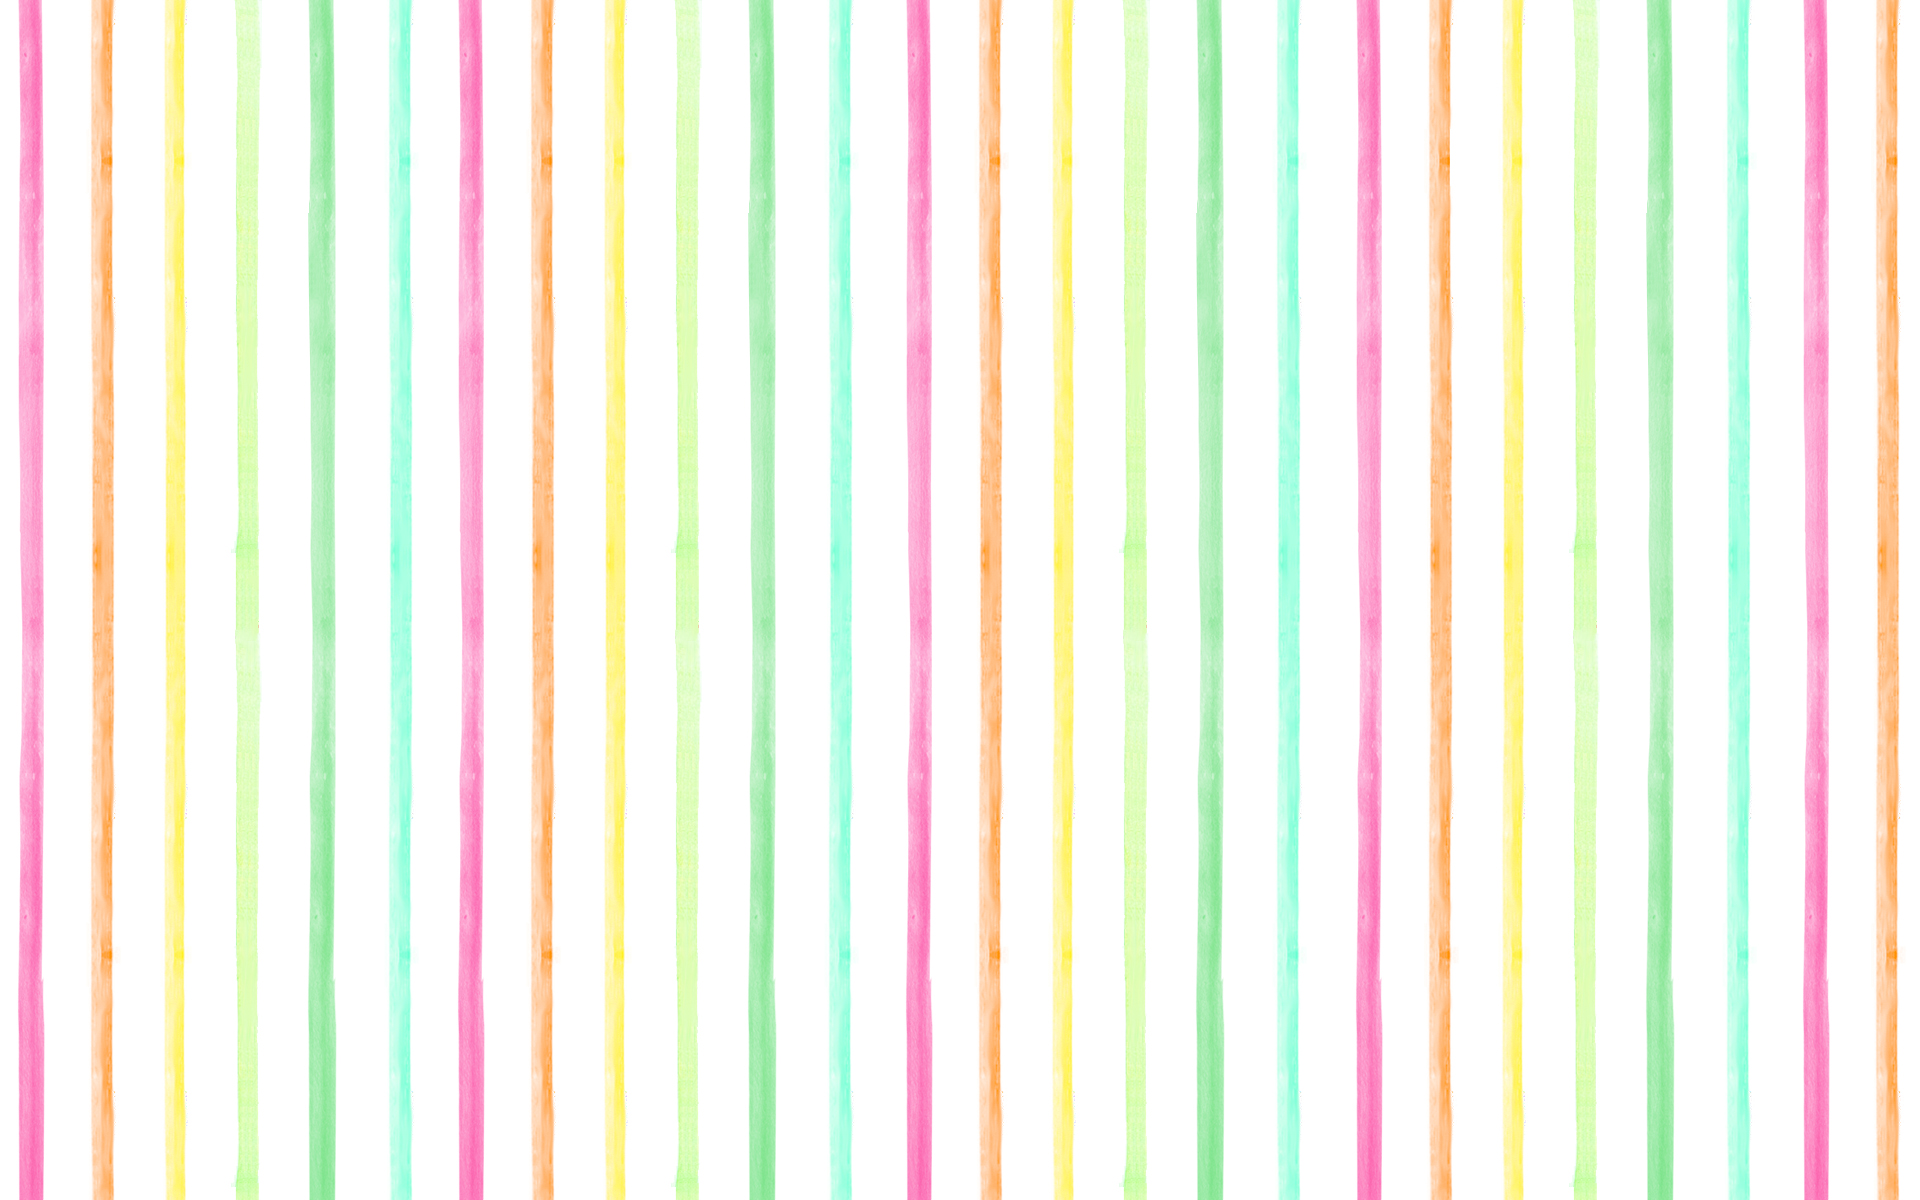 desktop wallpaper widescreen stripes freebies 1920x1200